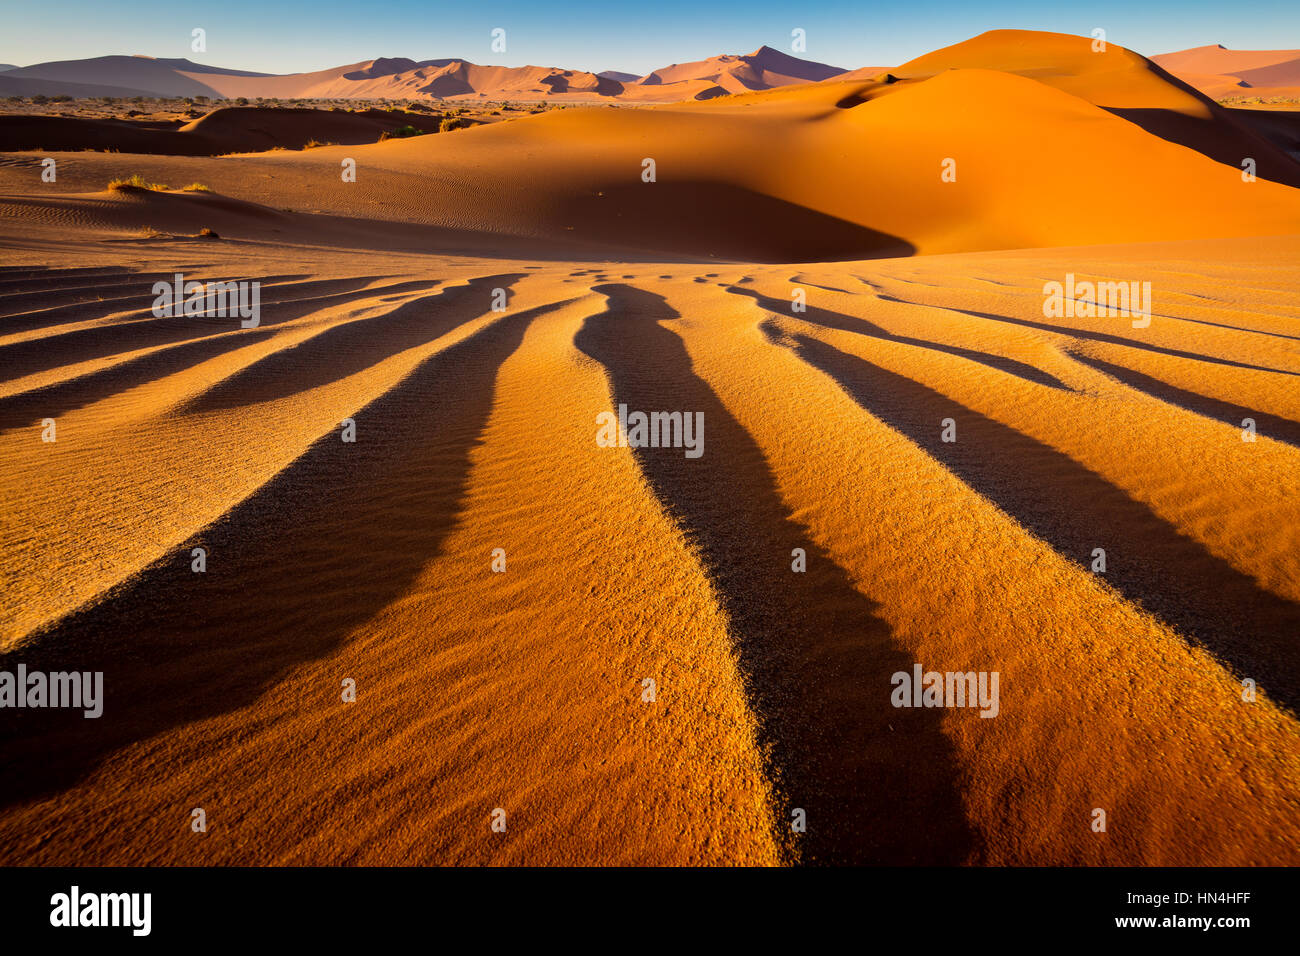 Sossusvlei is a salt and clay pan surrounded by high red dunes, located in the southern part of the Namib Desert, - Stock Image